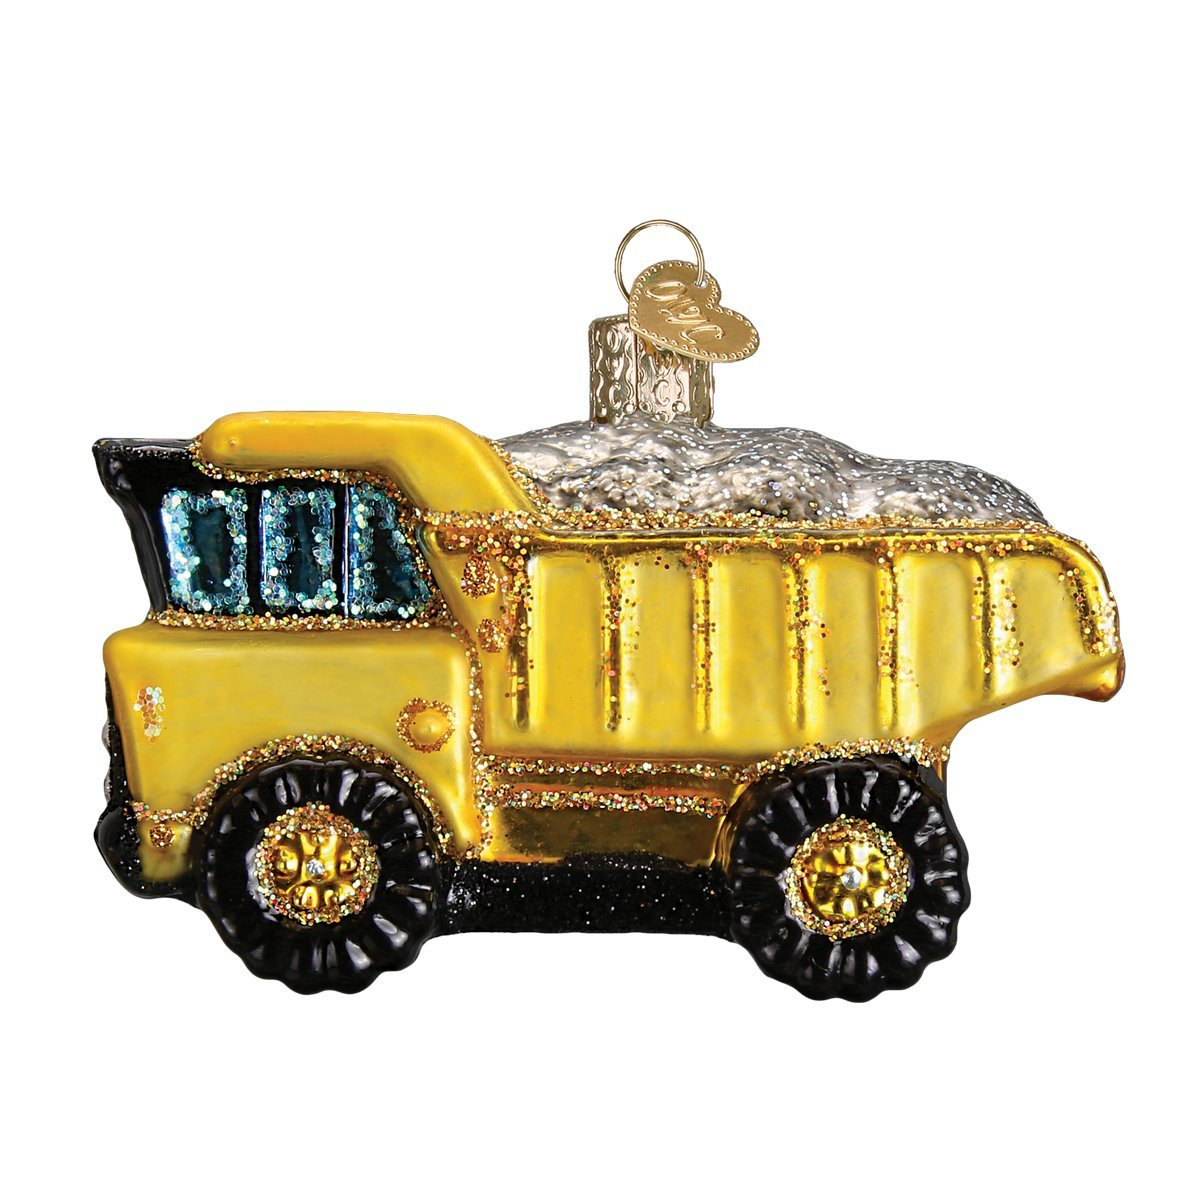 Old World Christmas Ornaments: Toy Bulldozer Glass Blown Ornaments for Christmas Tree 44086